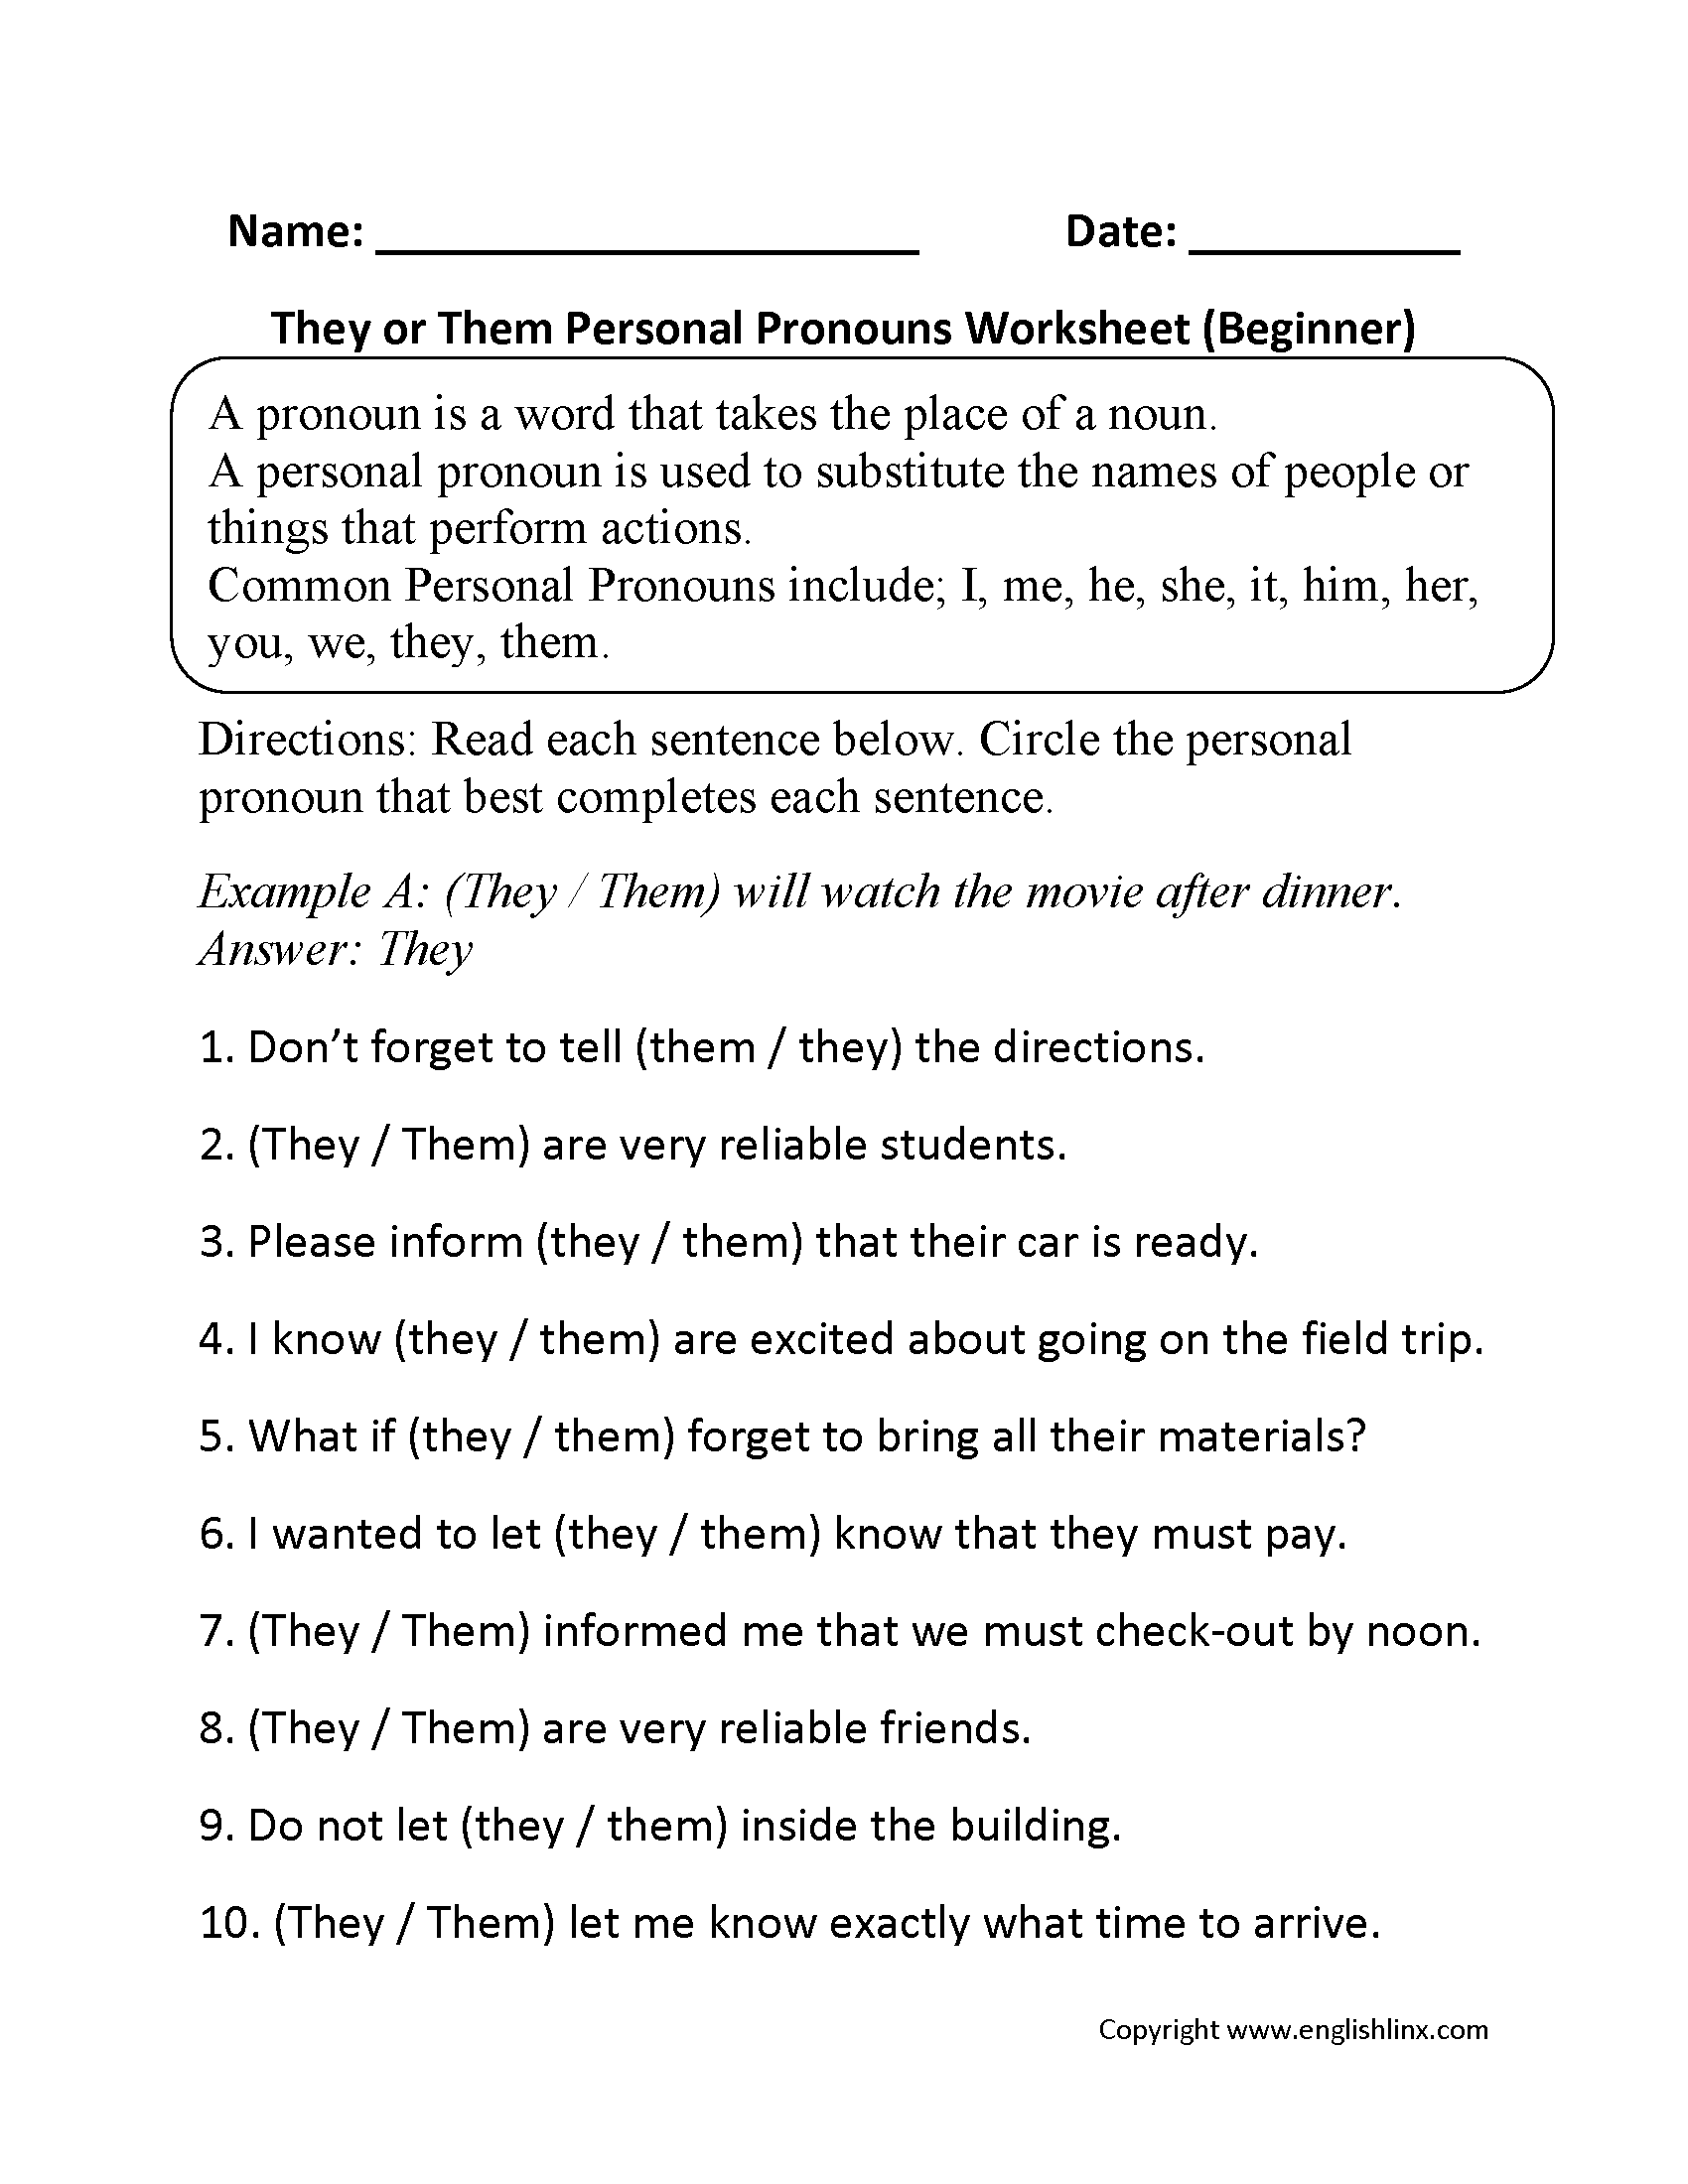 Pronouns Worksheets – Math Review Worksheets 6th Grade